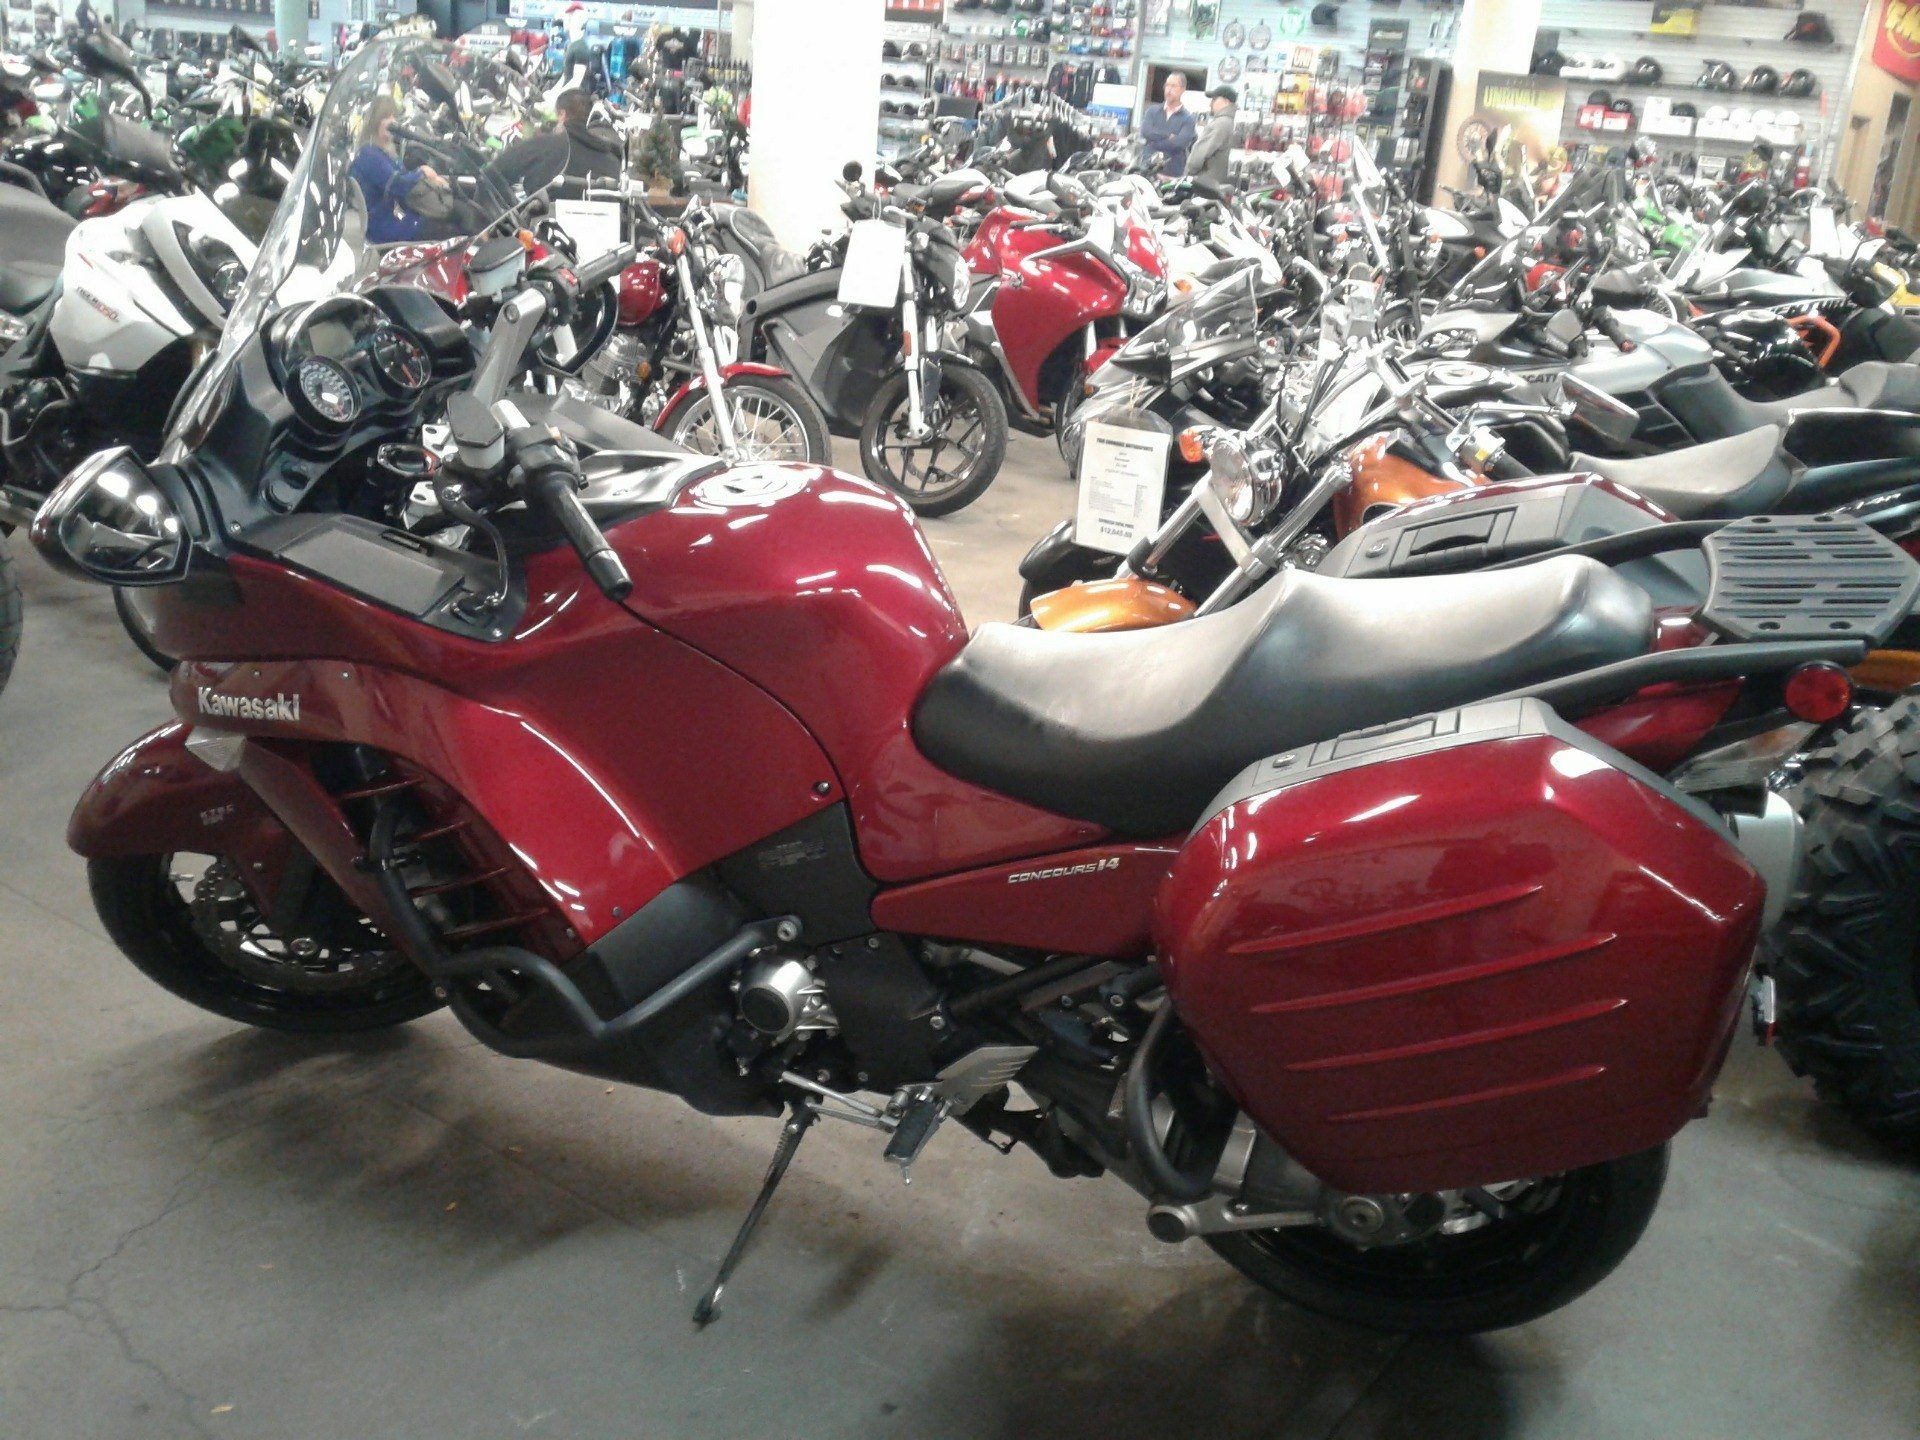 2012 Kawasaki Concours™ 14 ABS in Bakersfield, California - Photo 2